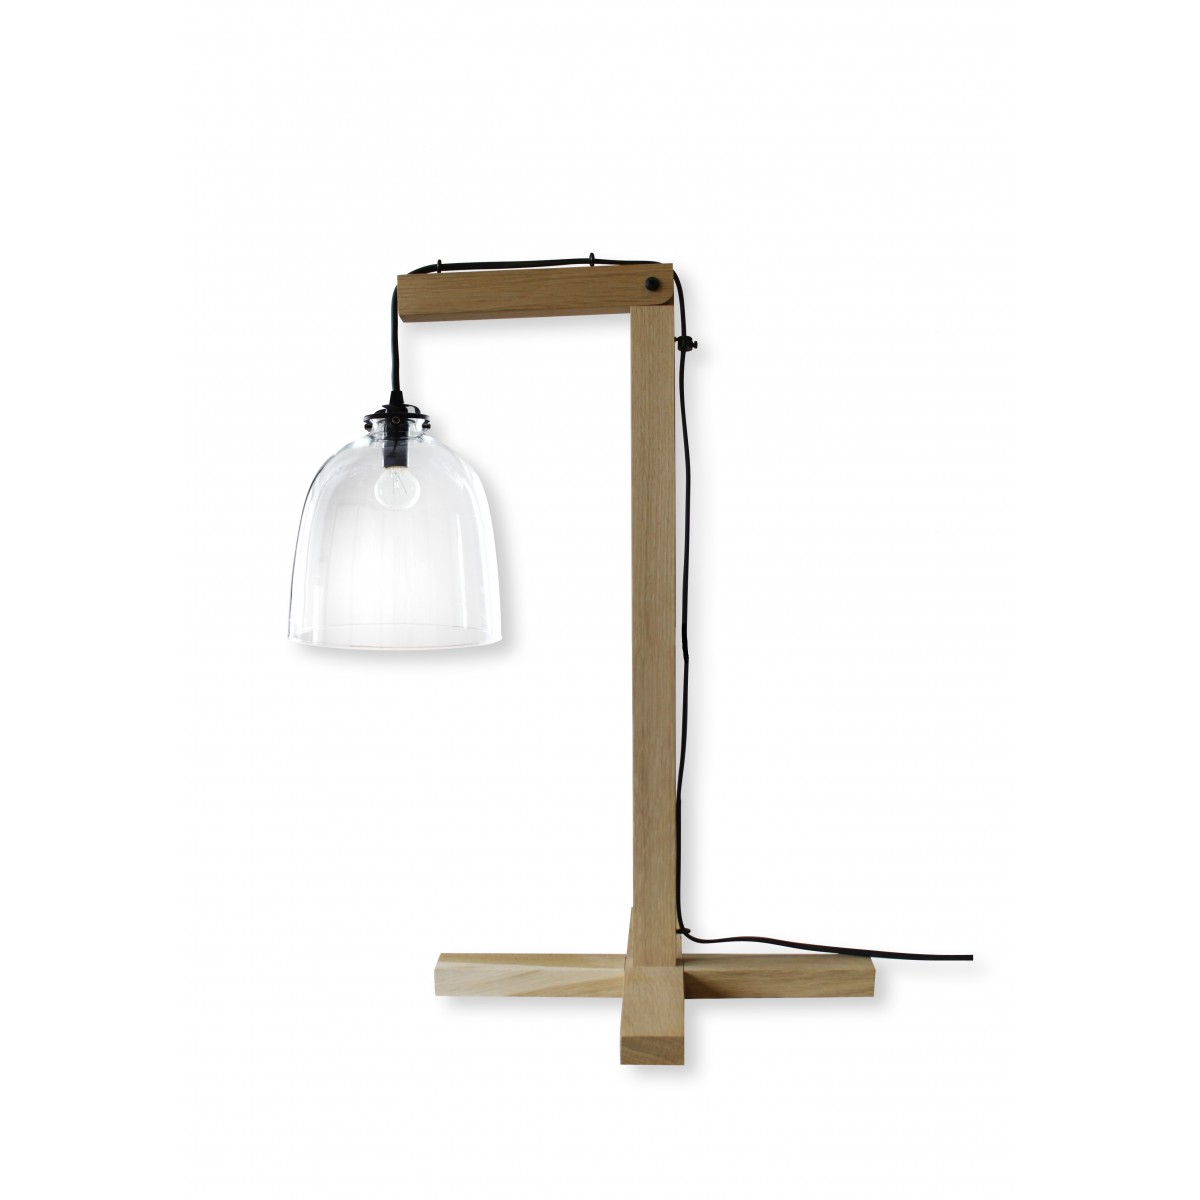 Lampe en bois brut abat jour en verre clochette angel des for But lampe a poser